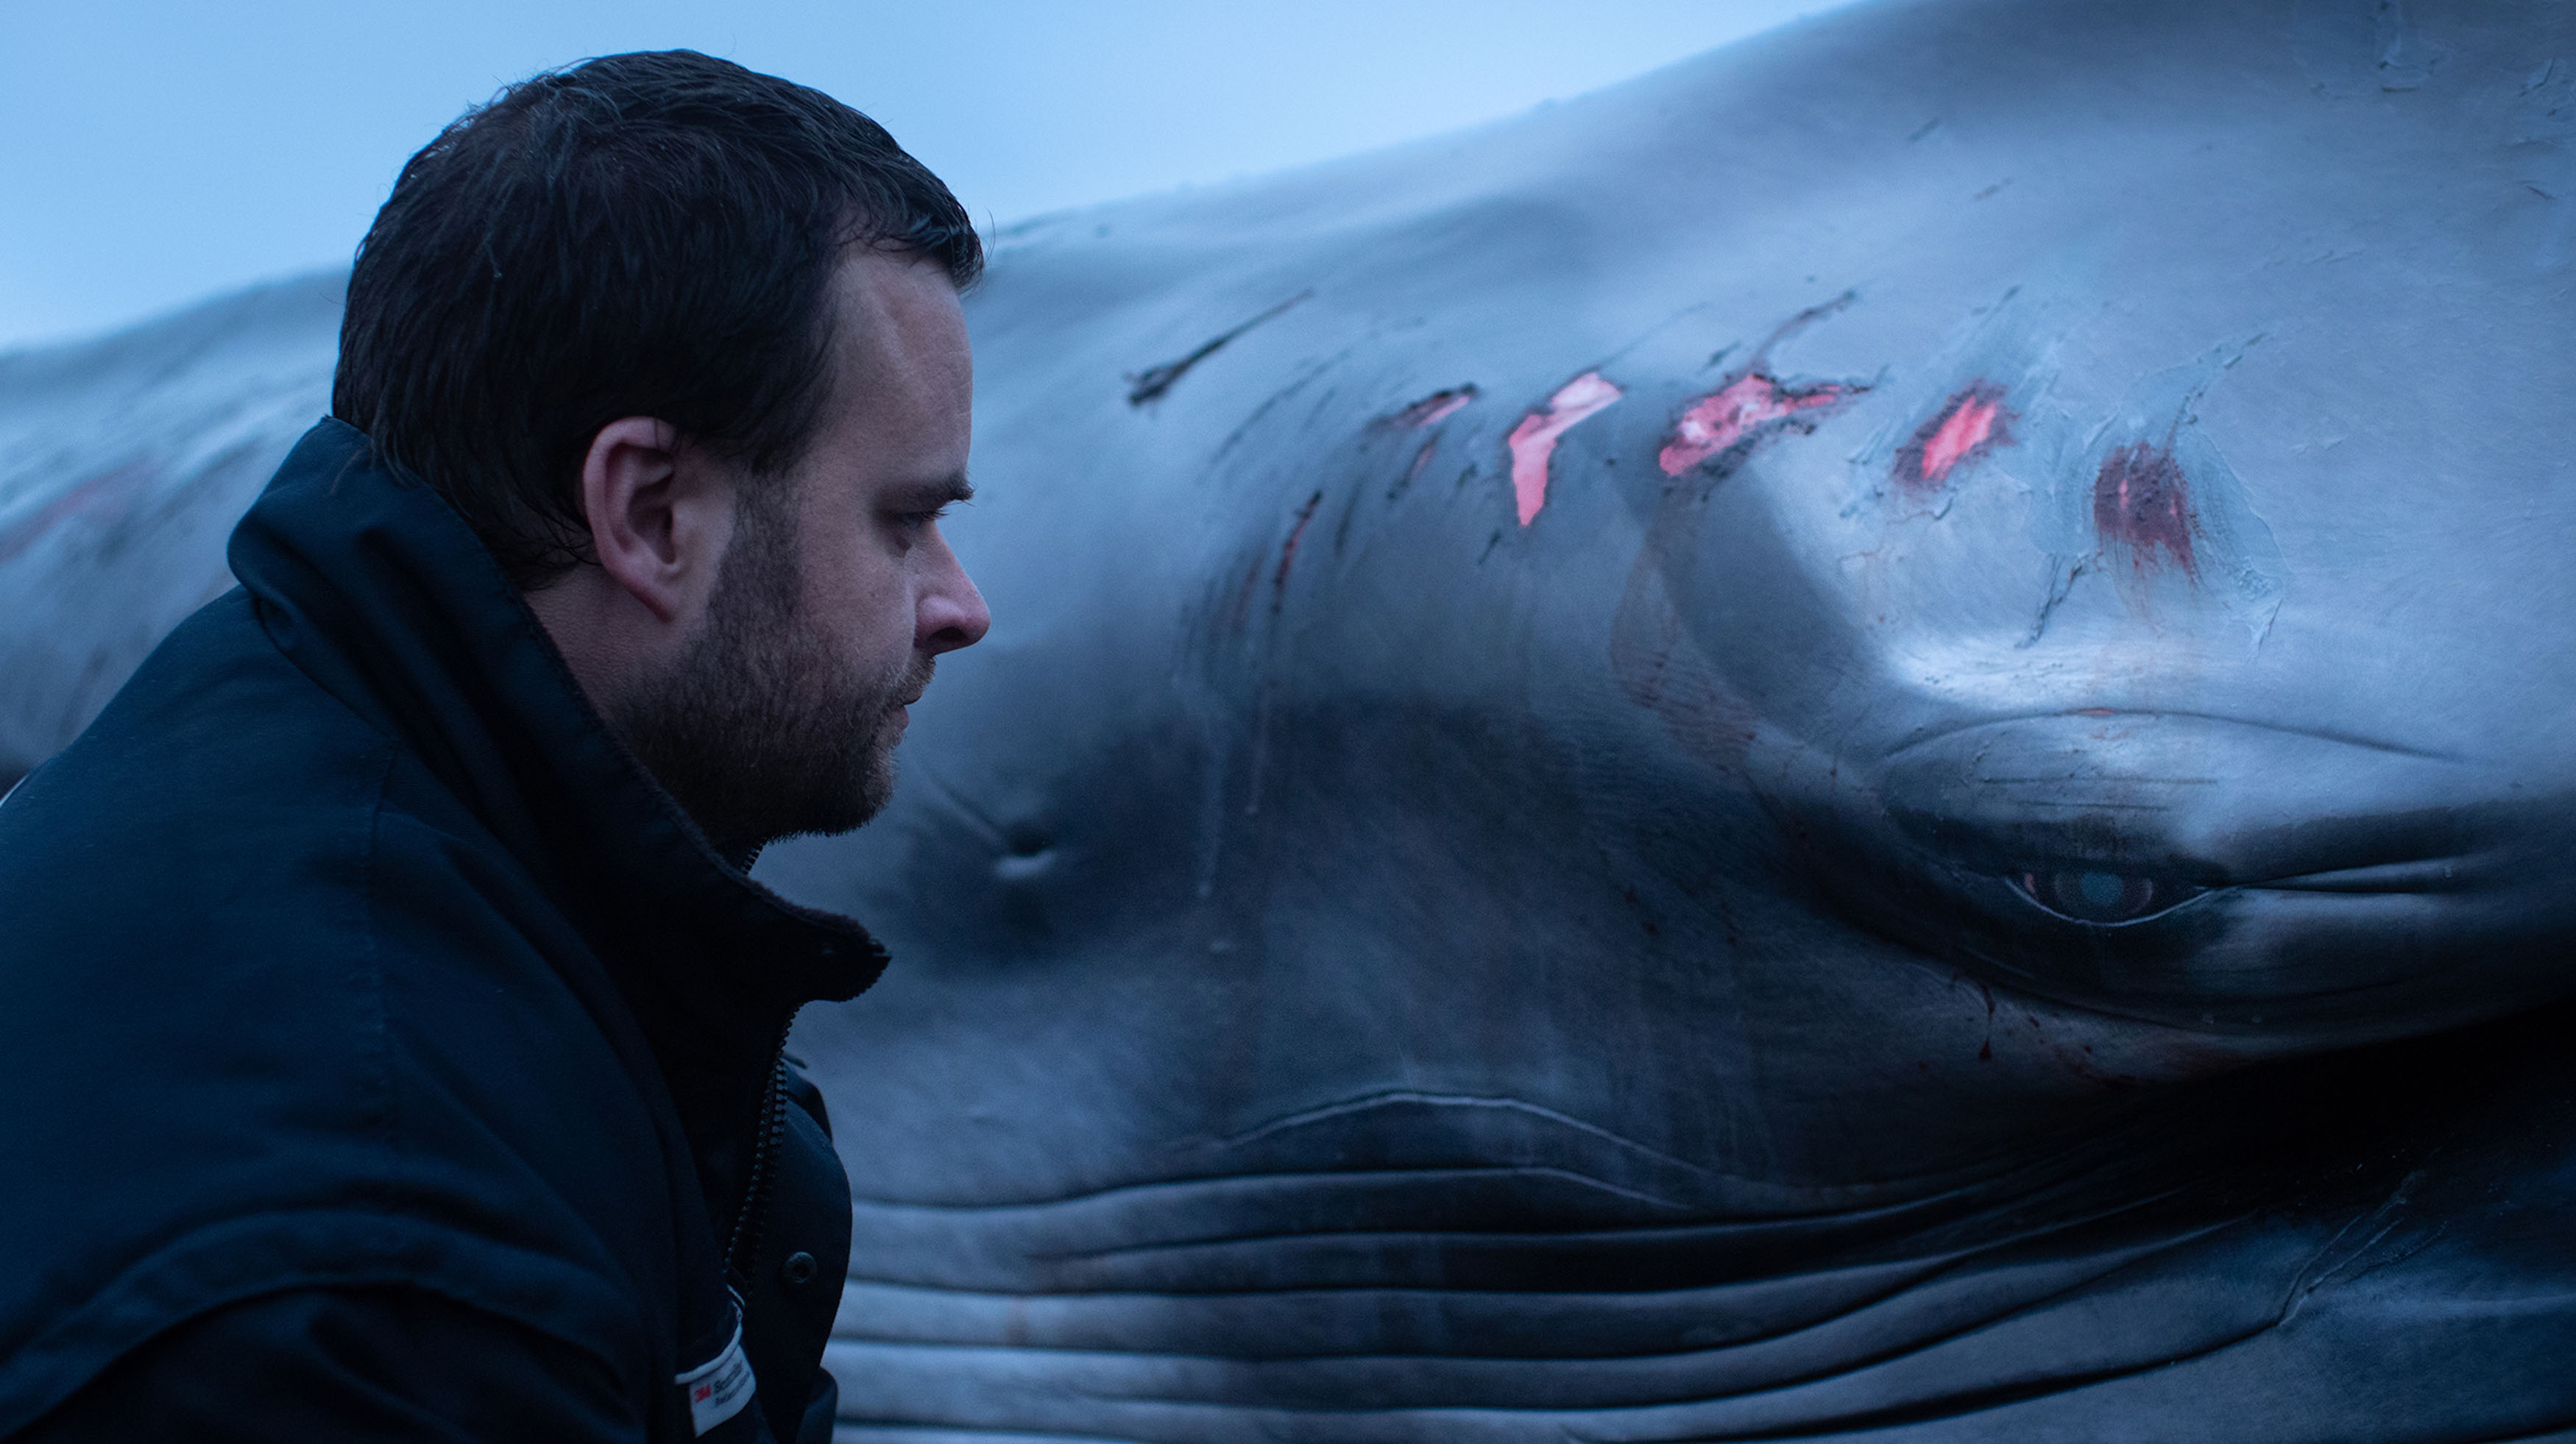 A man looks into the eye of a whale. The whale has grazes and open wounds along its body.